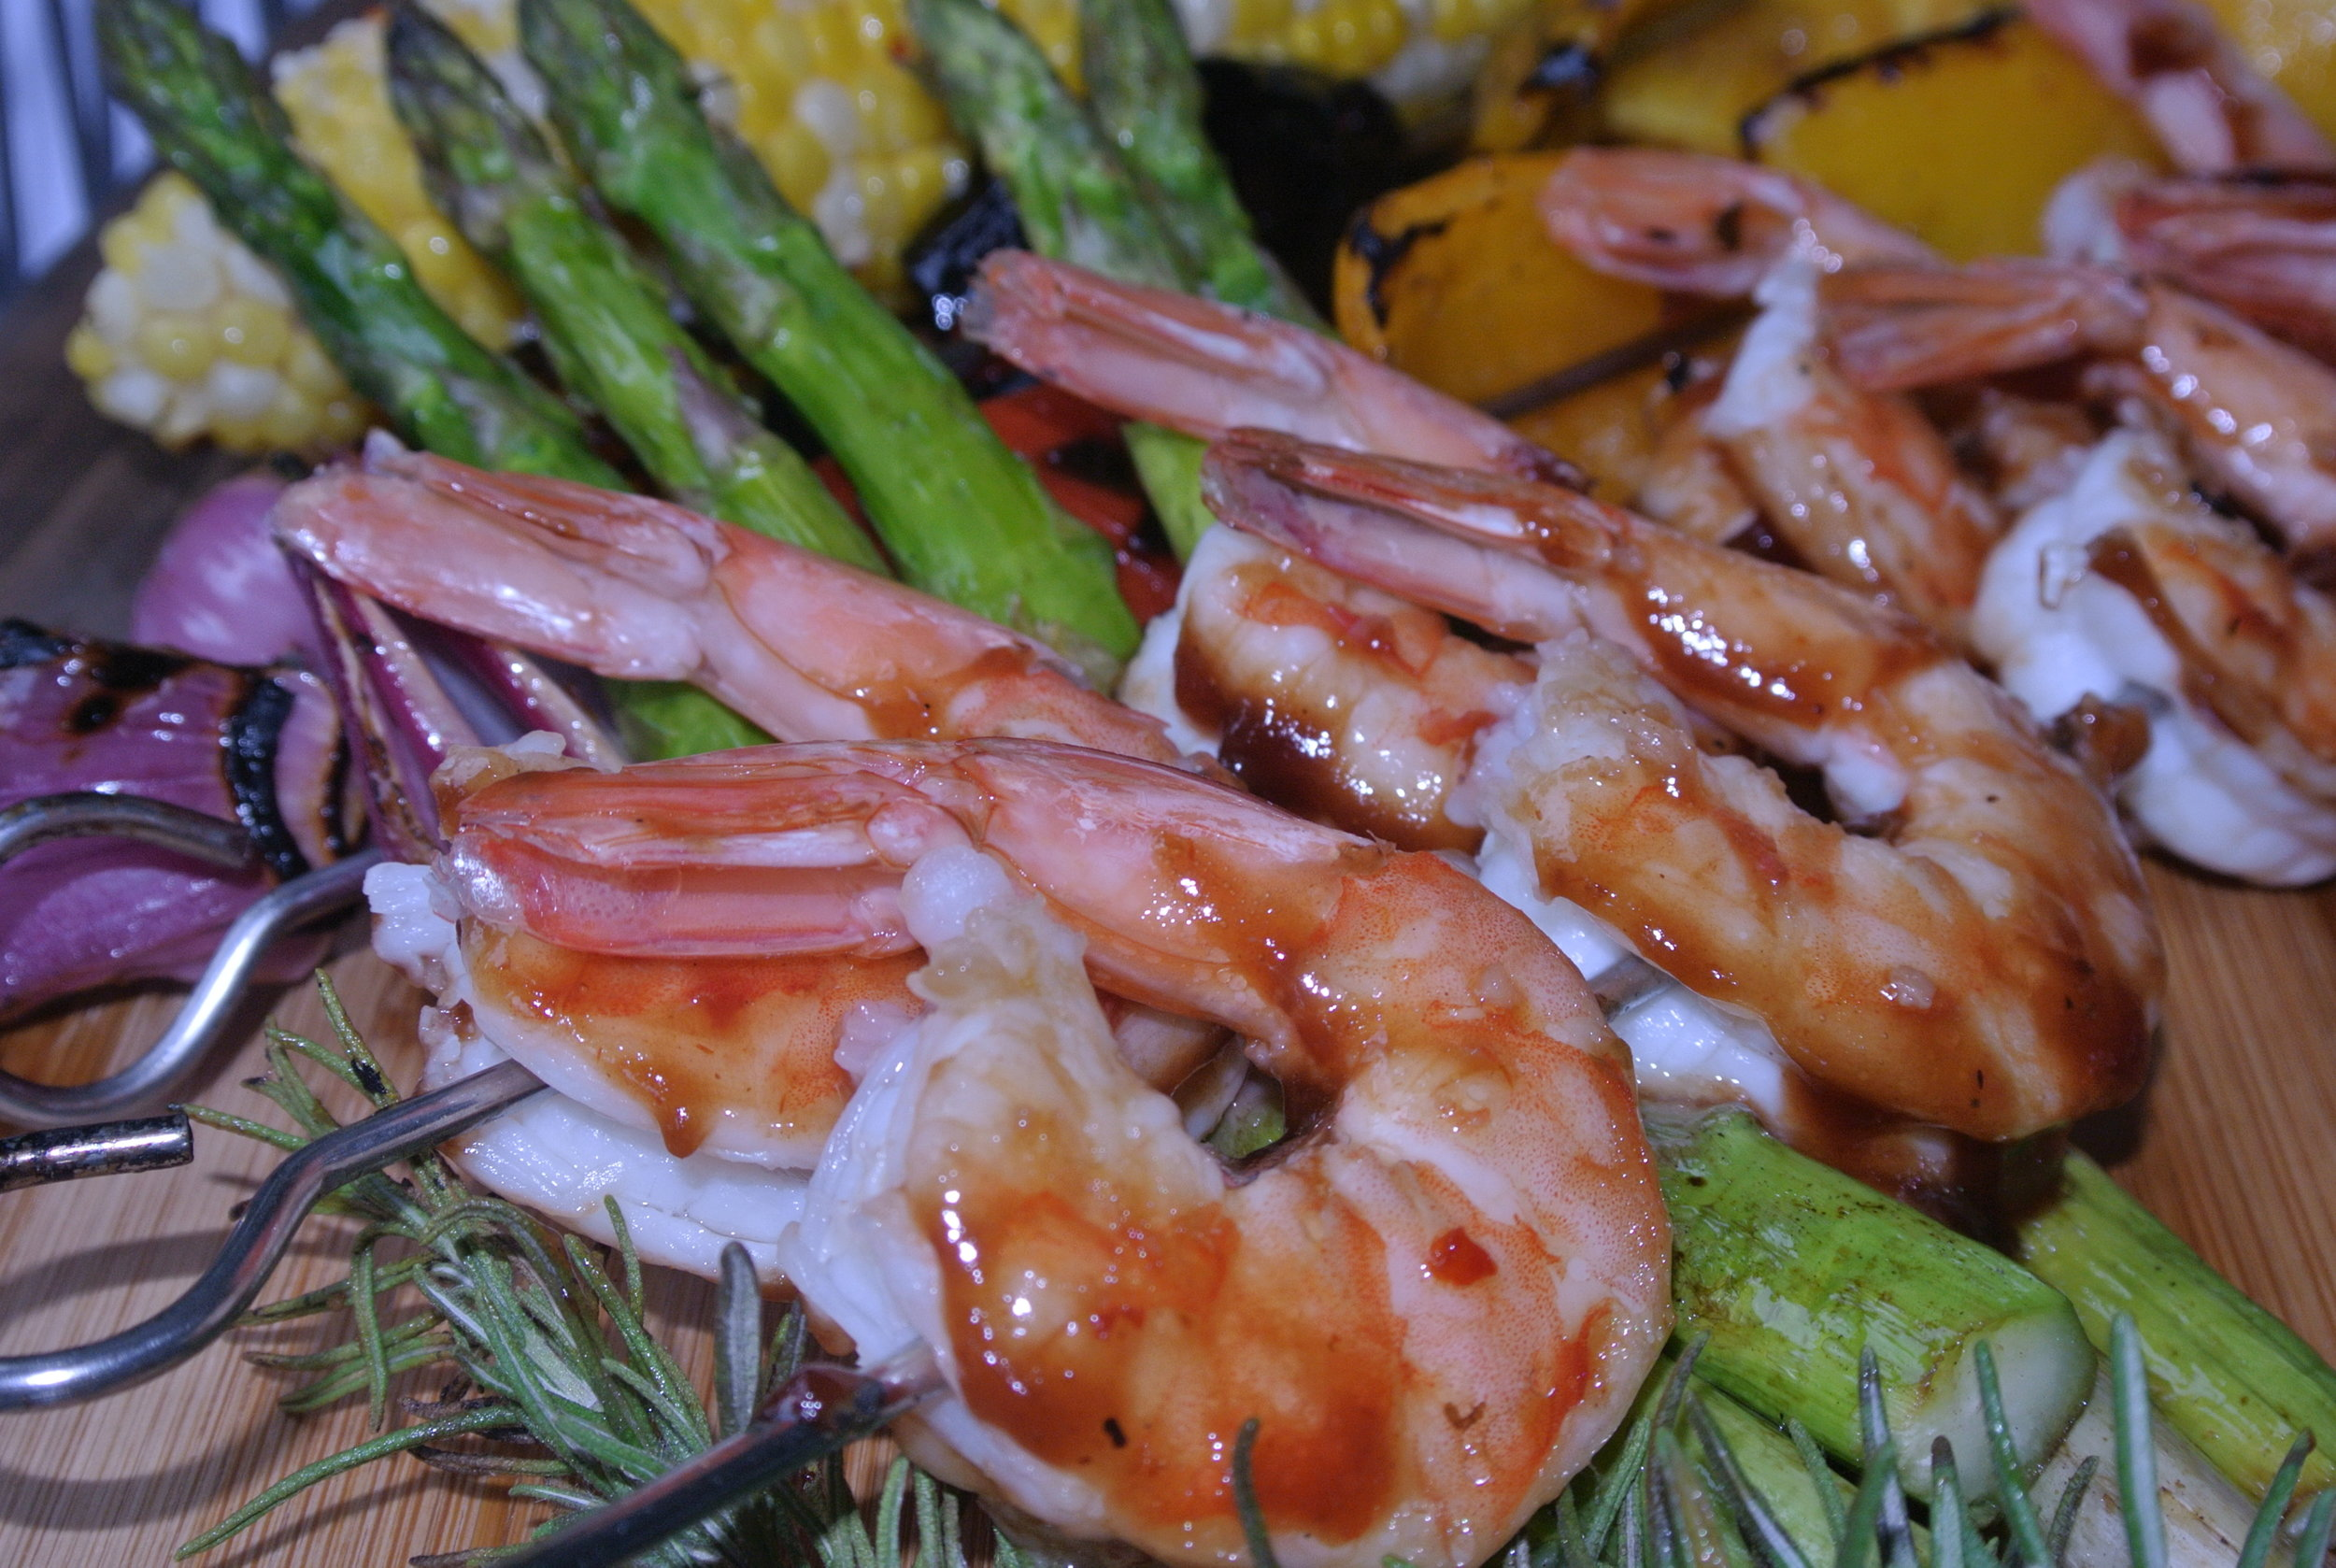 Entree Photos - Featured image: Honey glazed shrimp kabobs with vegetables, served over asparagus